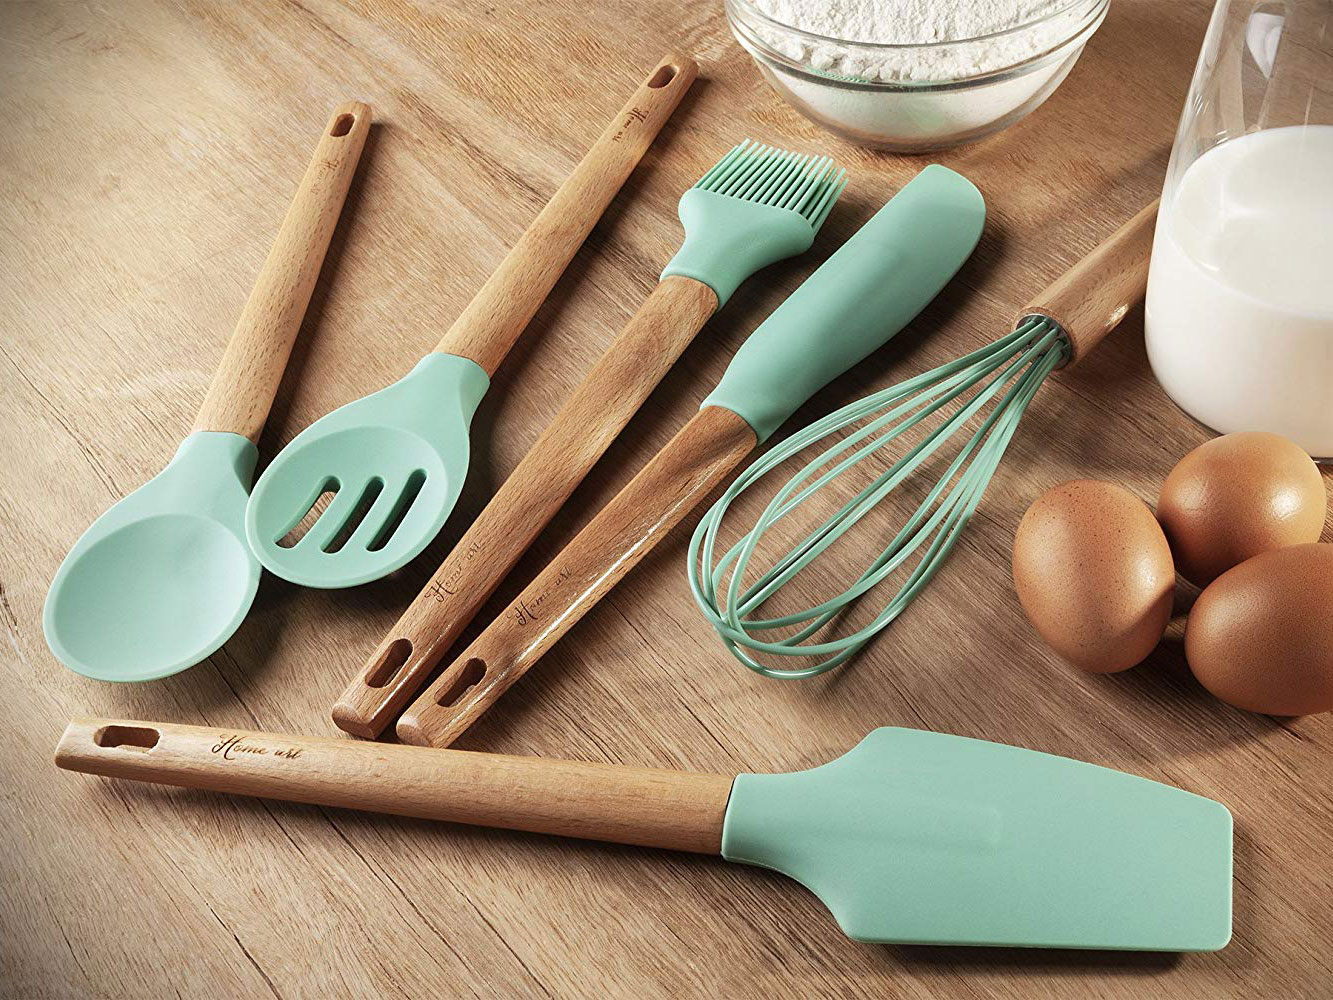 15 Pastry Tools for Making Perfect Pies